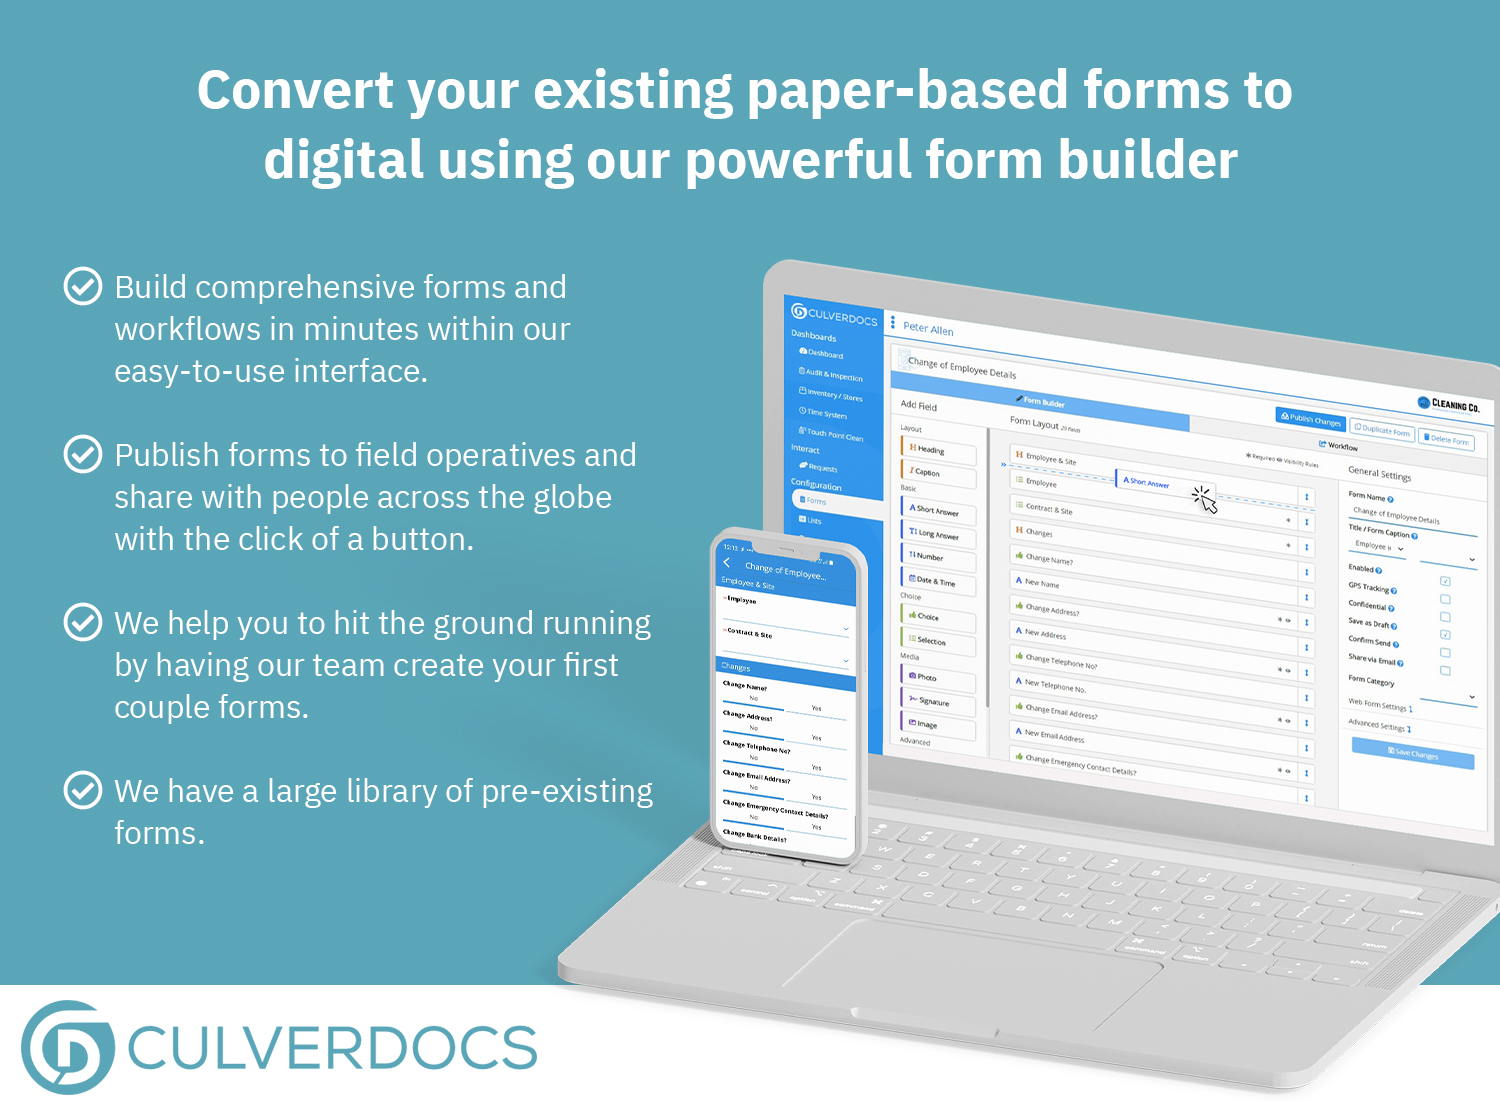 Convert your existing paper-based forms to digital using our powerful form builder